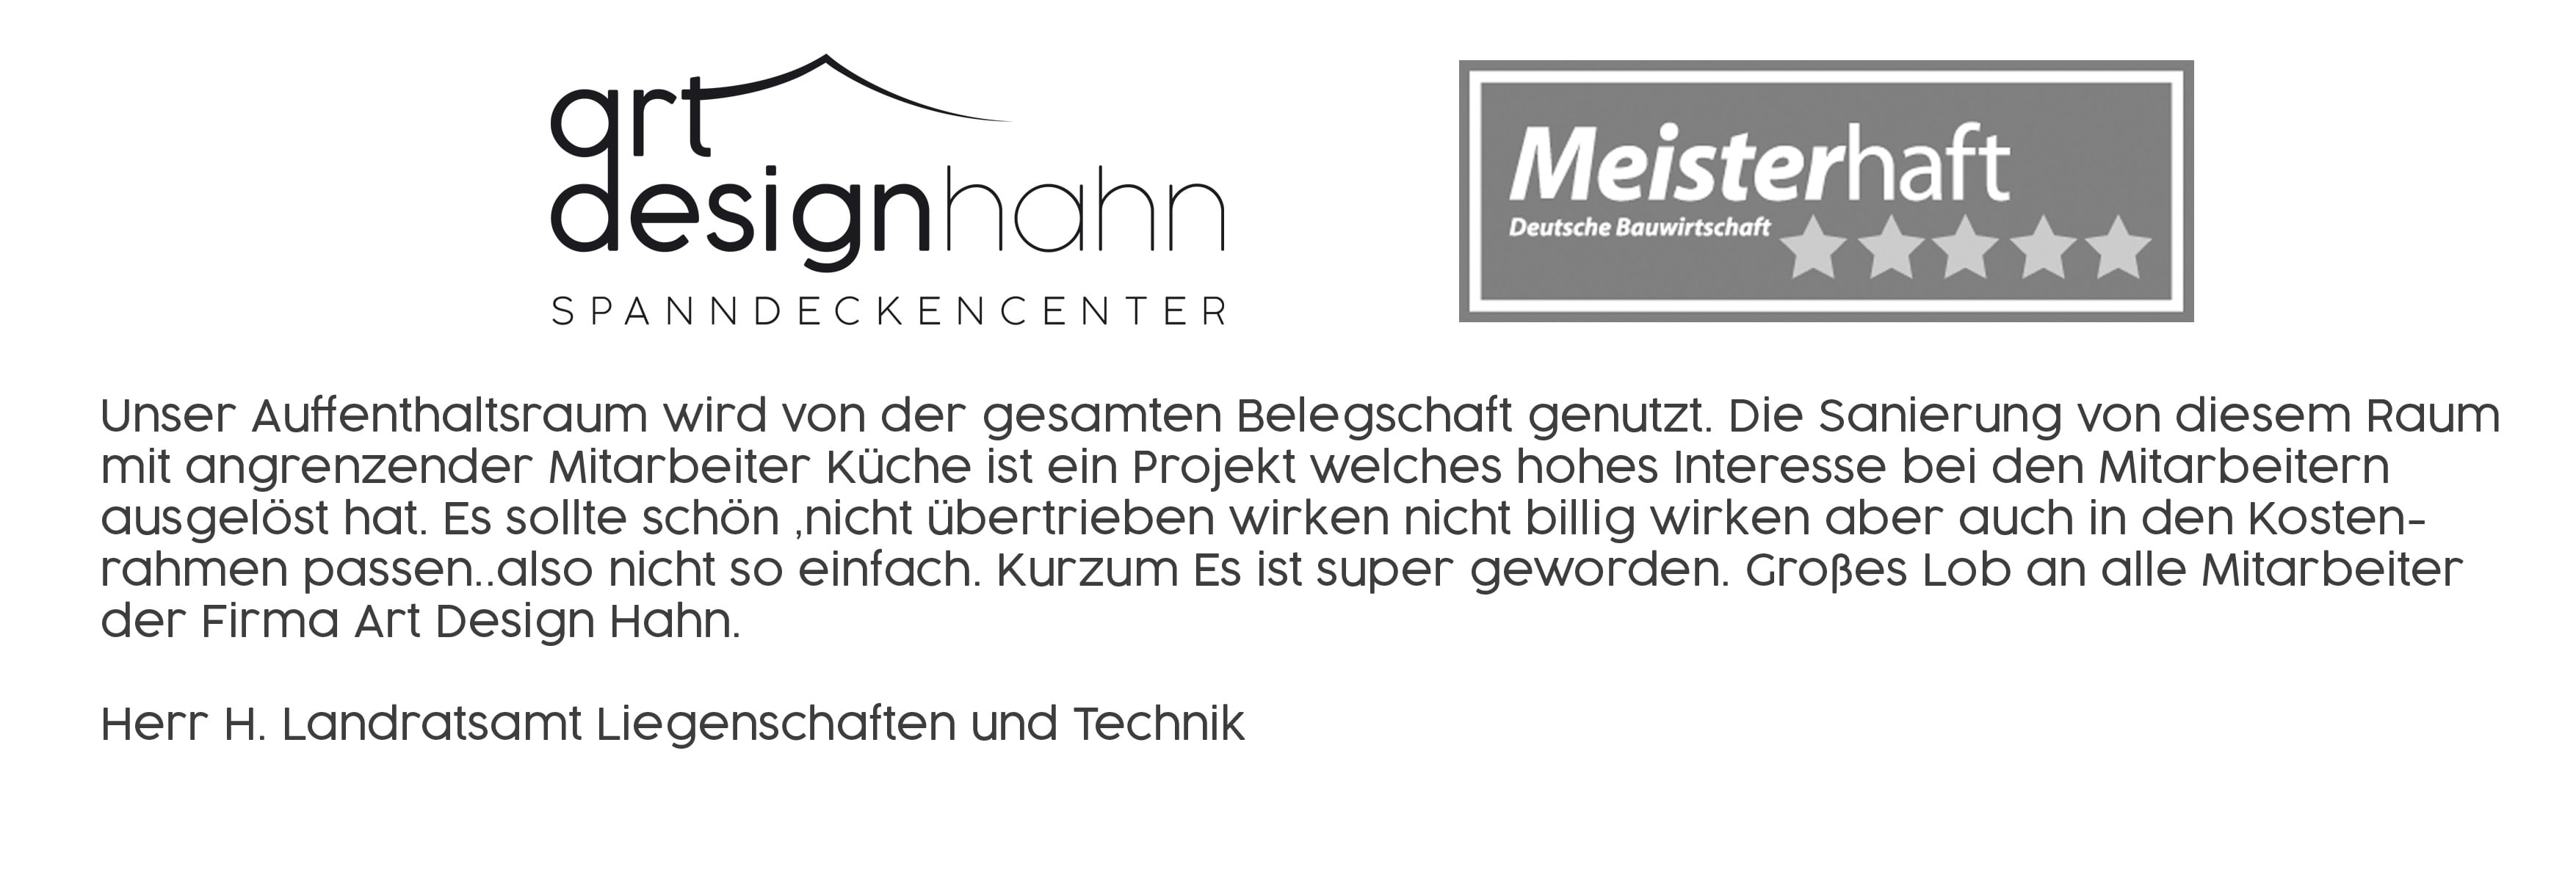 Art Design Hahn Meisterhafte Rezension 40